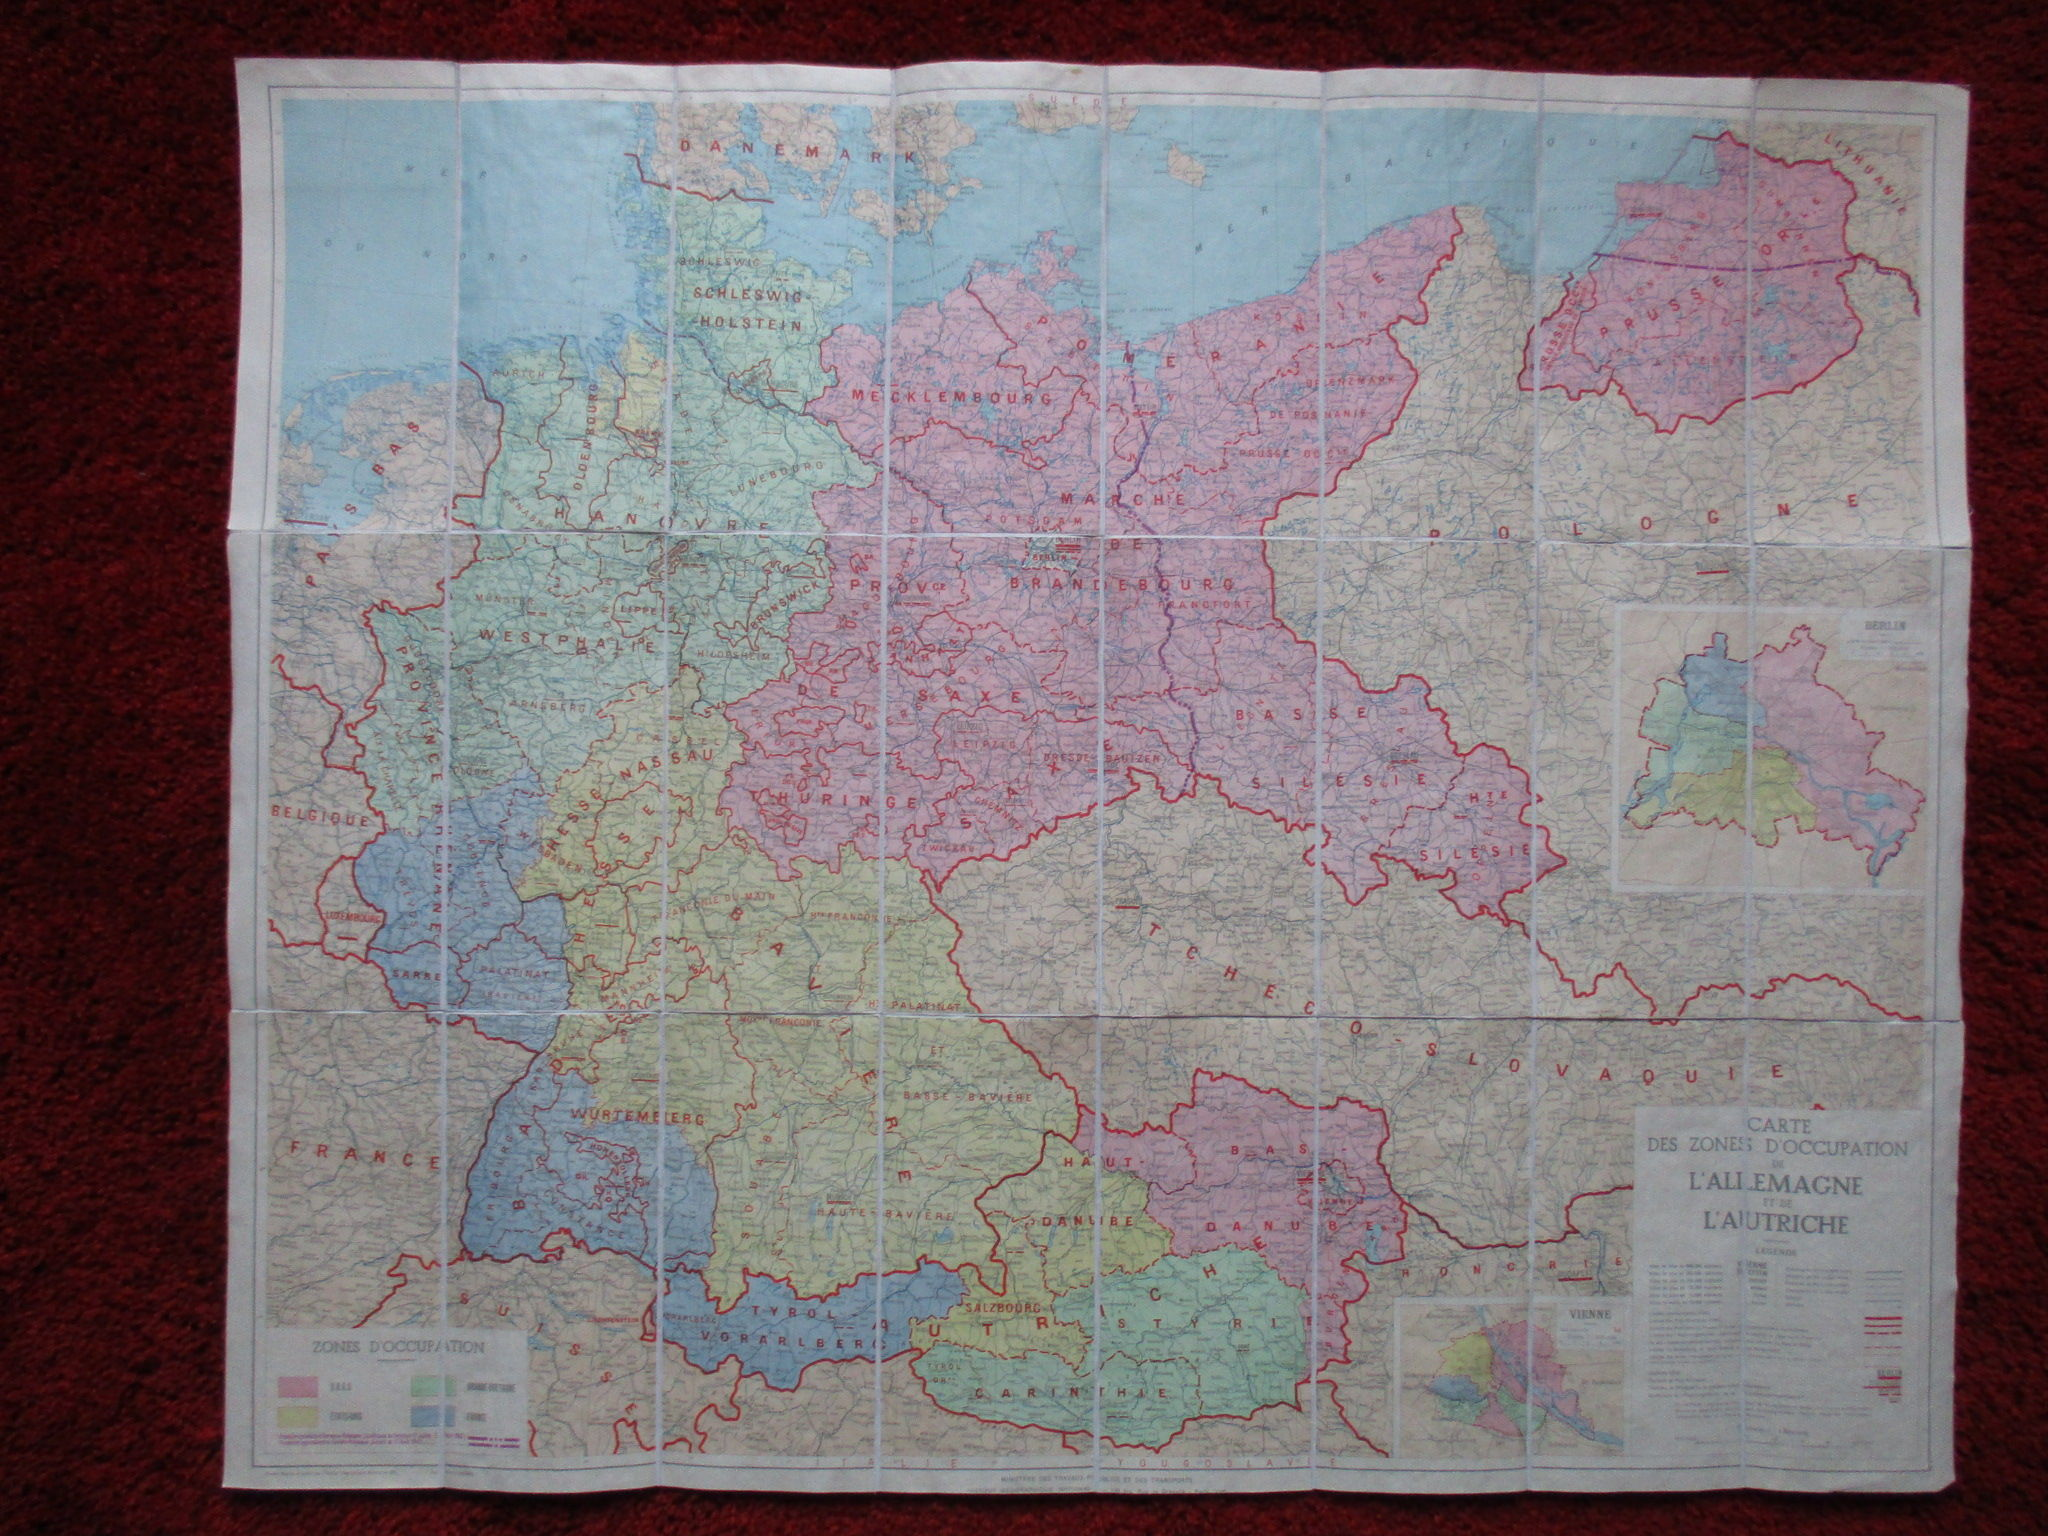 Map Of Germany Occupation Zones.Map Of The Occupation Of Germany And Austria 1945 Carte Des Zones D